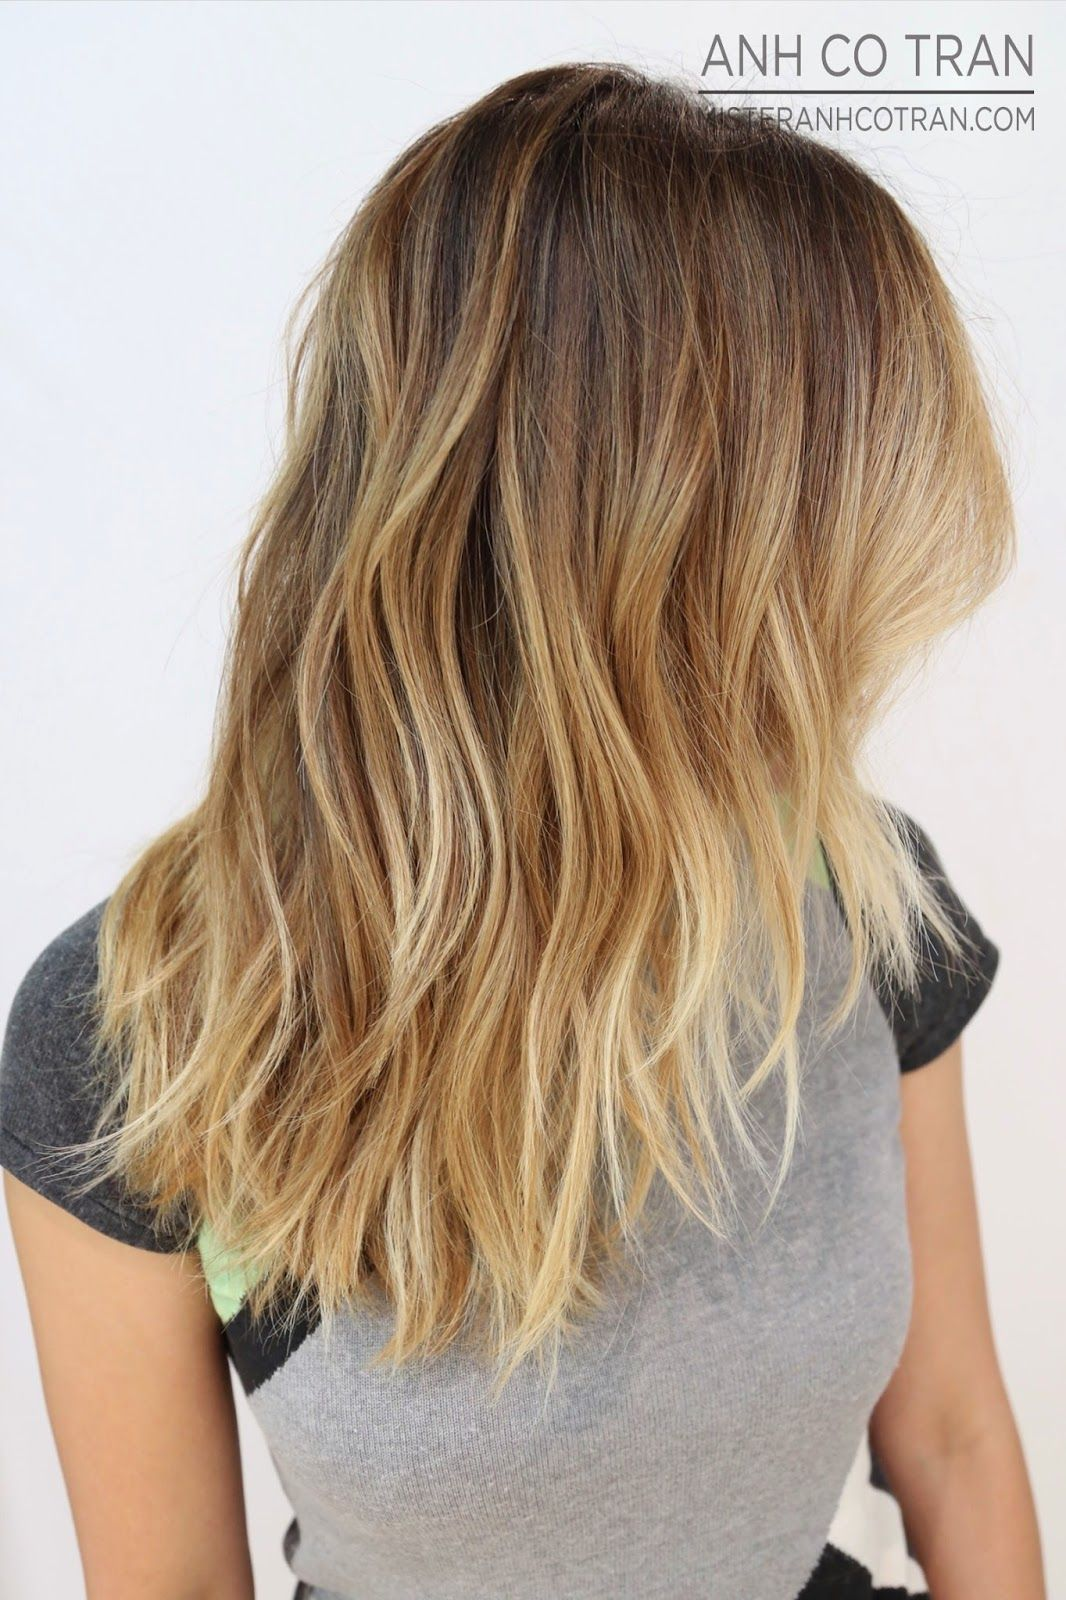 2014 Ombre Hairstyles: Medium Hair Styles with Bangs